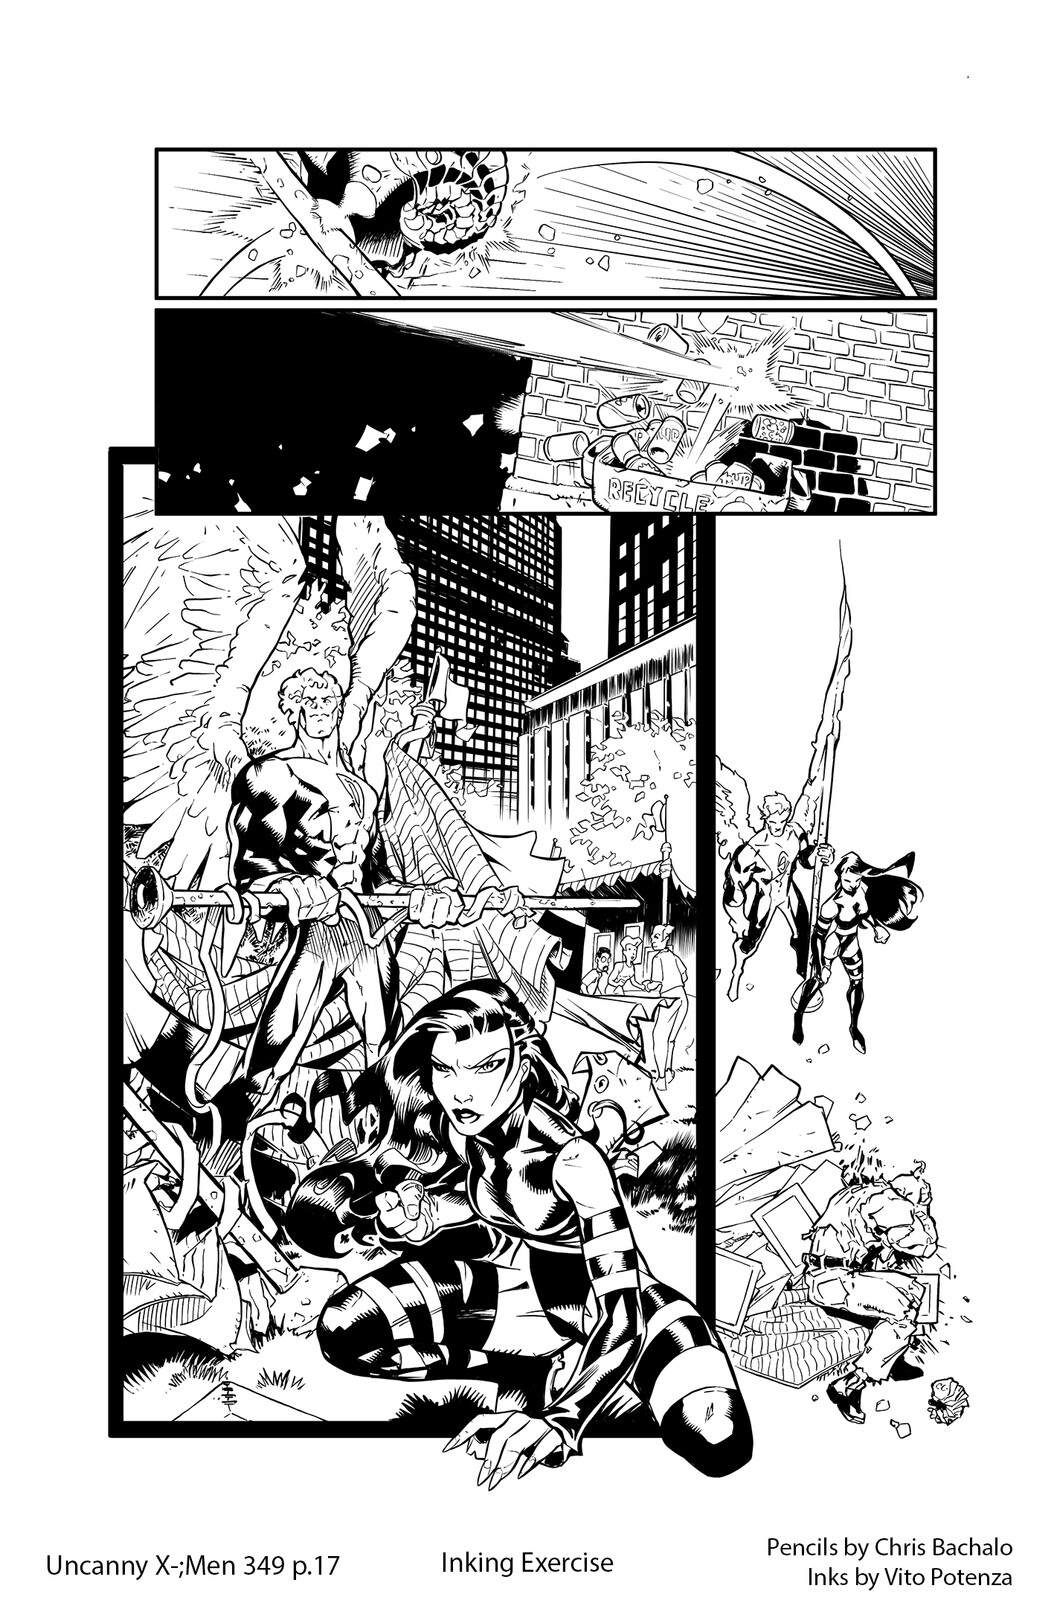 Uncanny X-Men #349 - page 17 Pencils by Chris Bachalo | Inking by me